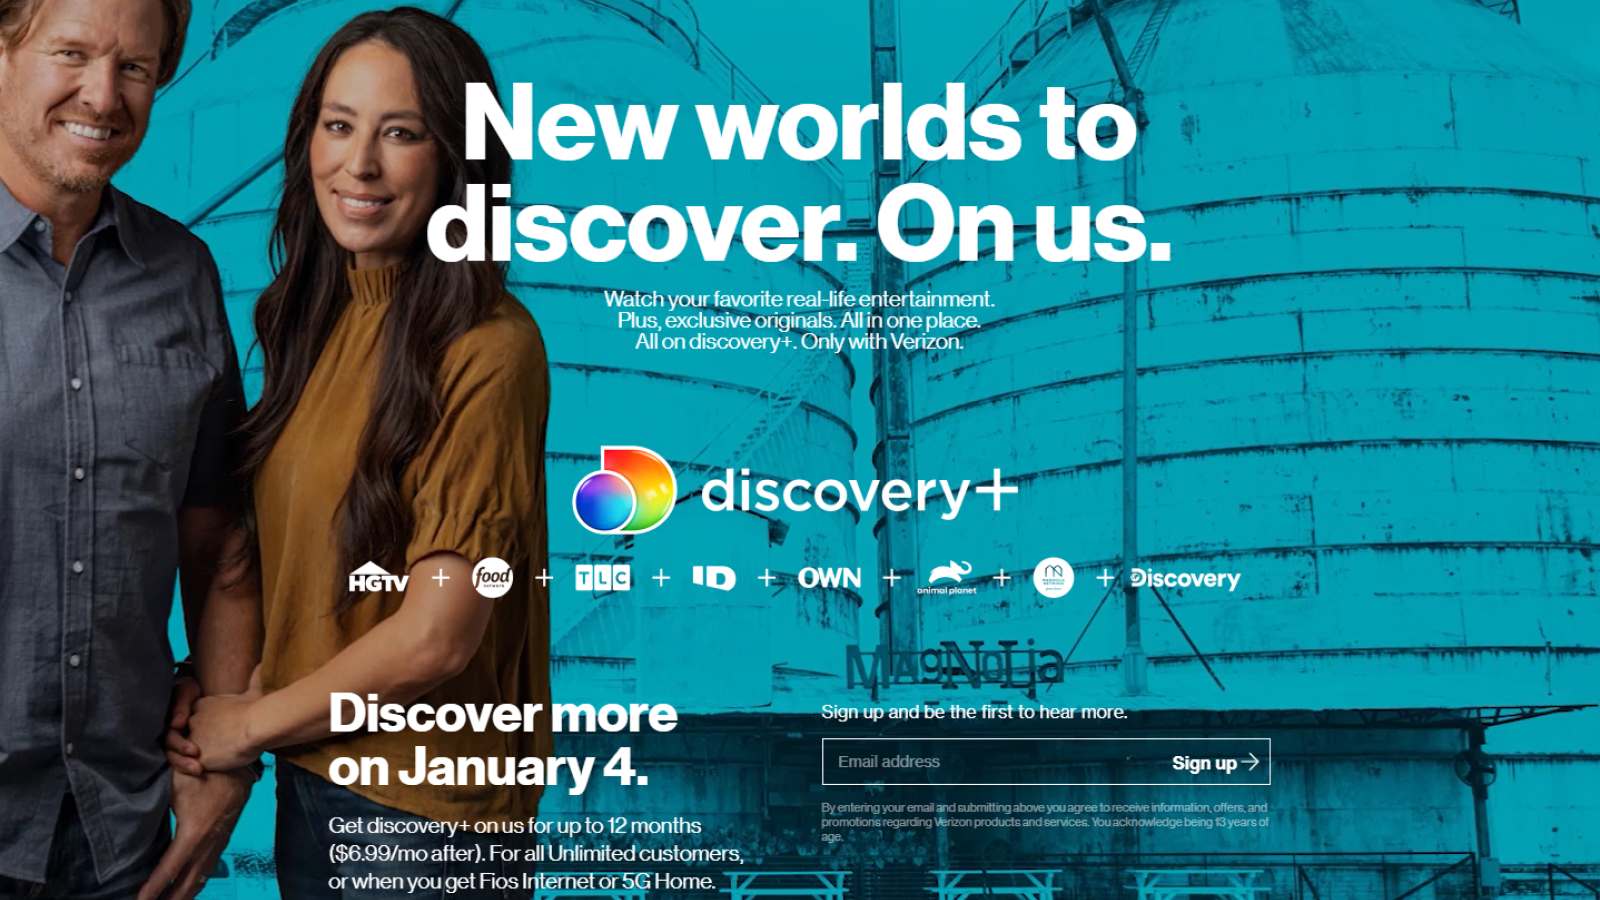 How to Get Discovery Plus for Free in the US? - TechNadu